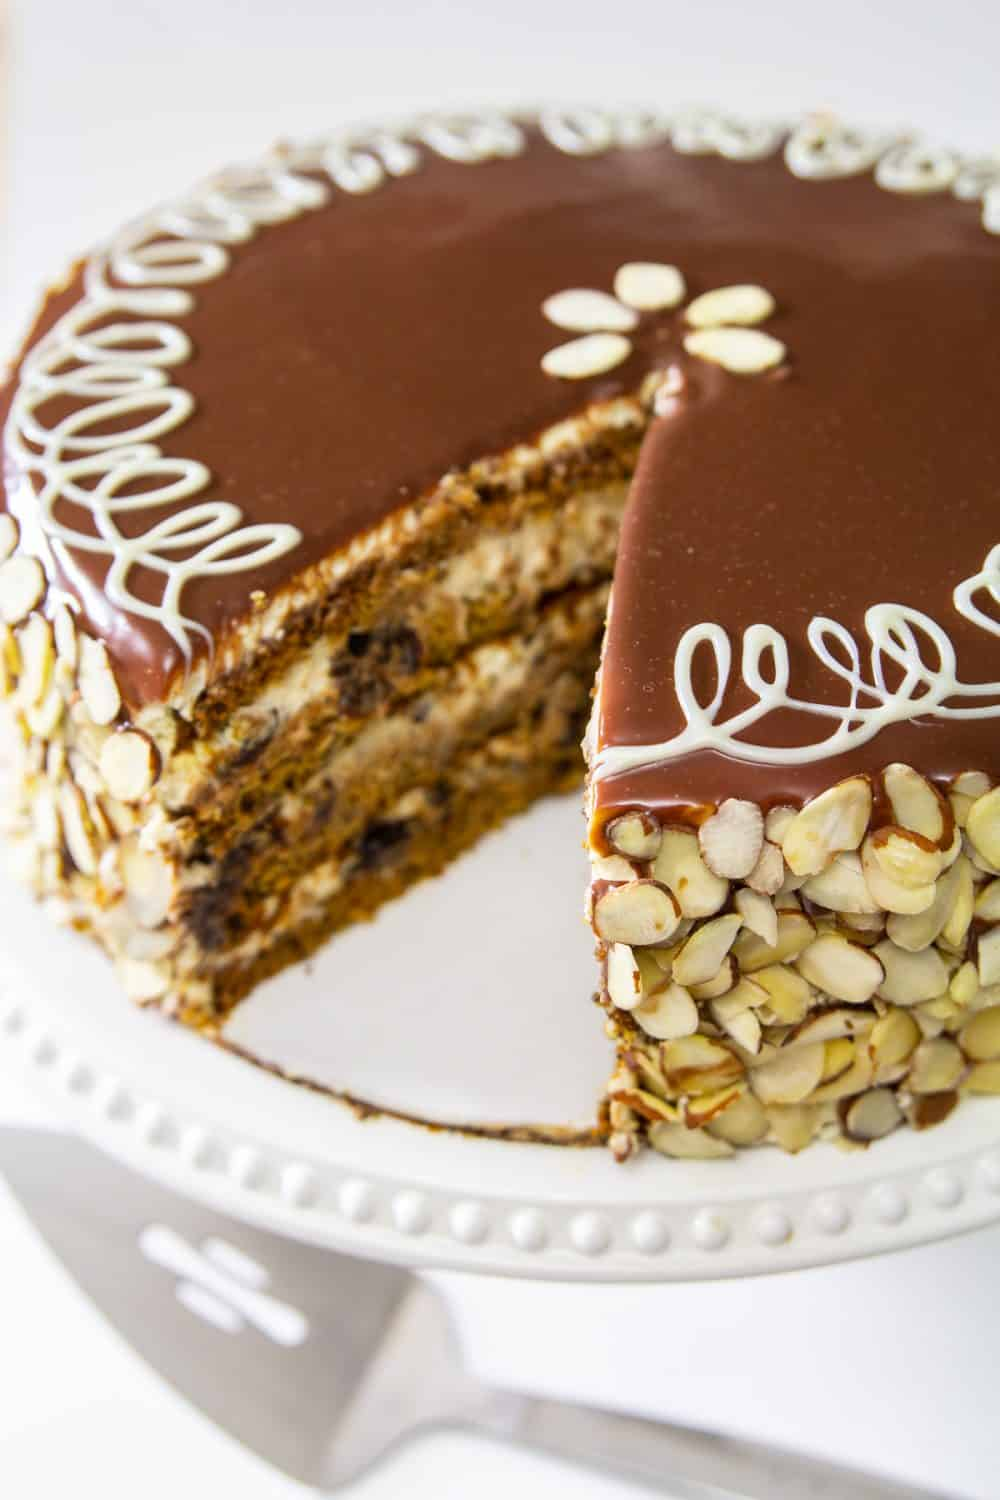 Poppy Seed Honey Cake covered in chocolate ganache and sliced almonds, with one slice cut out on a white plate and white background.